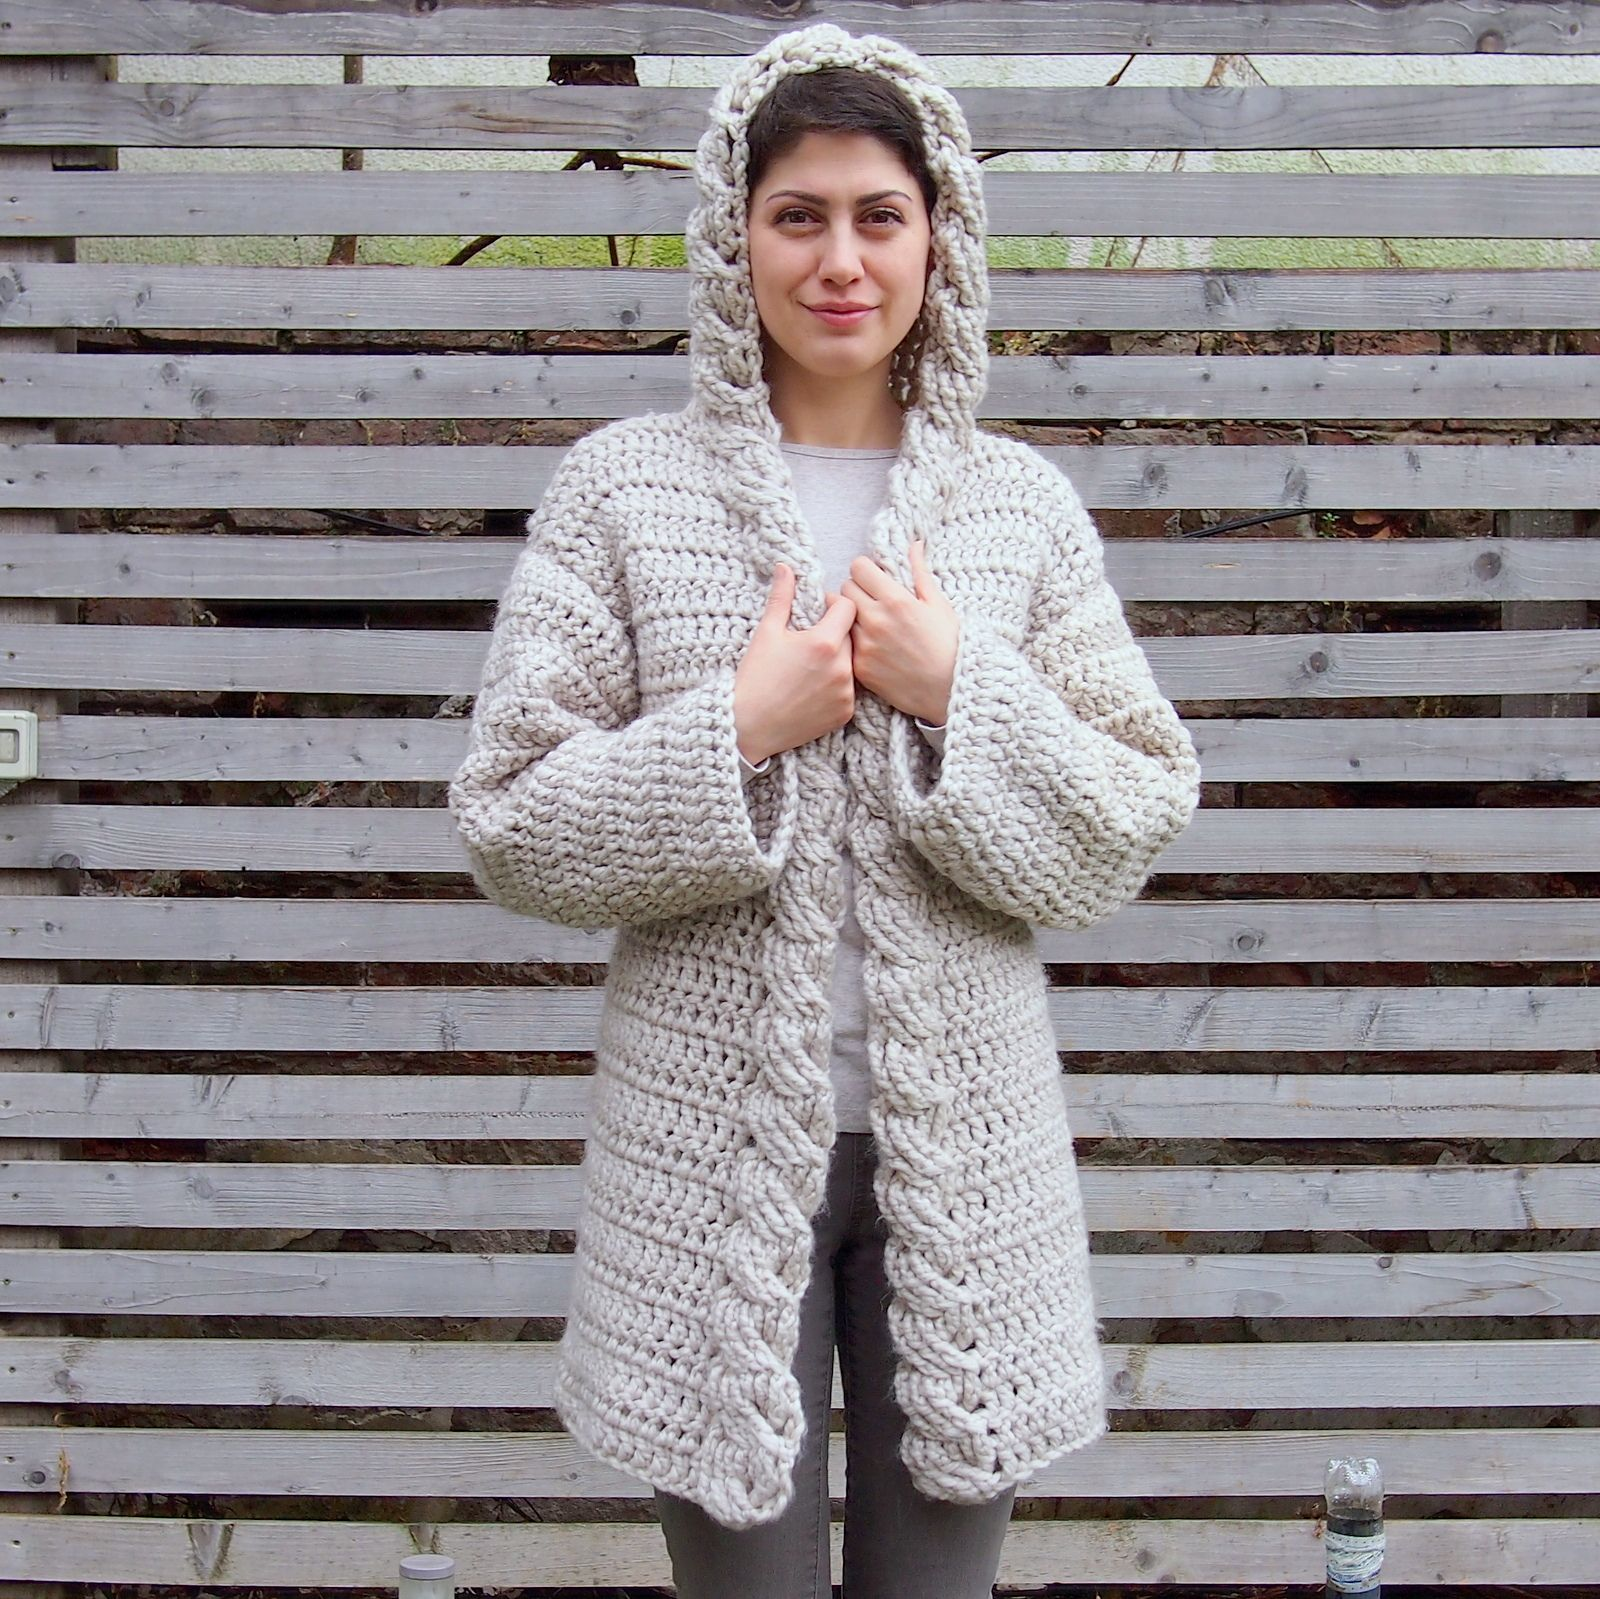 Ravelry: Very Winter hooded cardigan by Accessorise